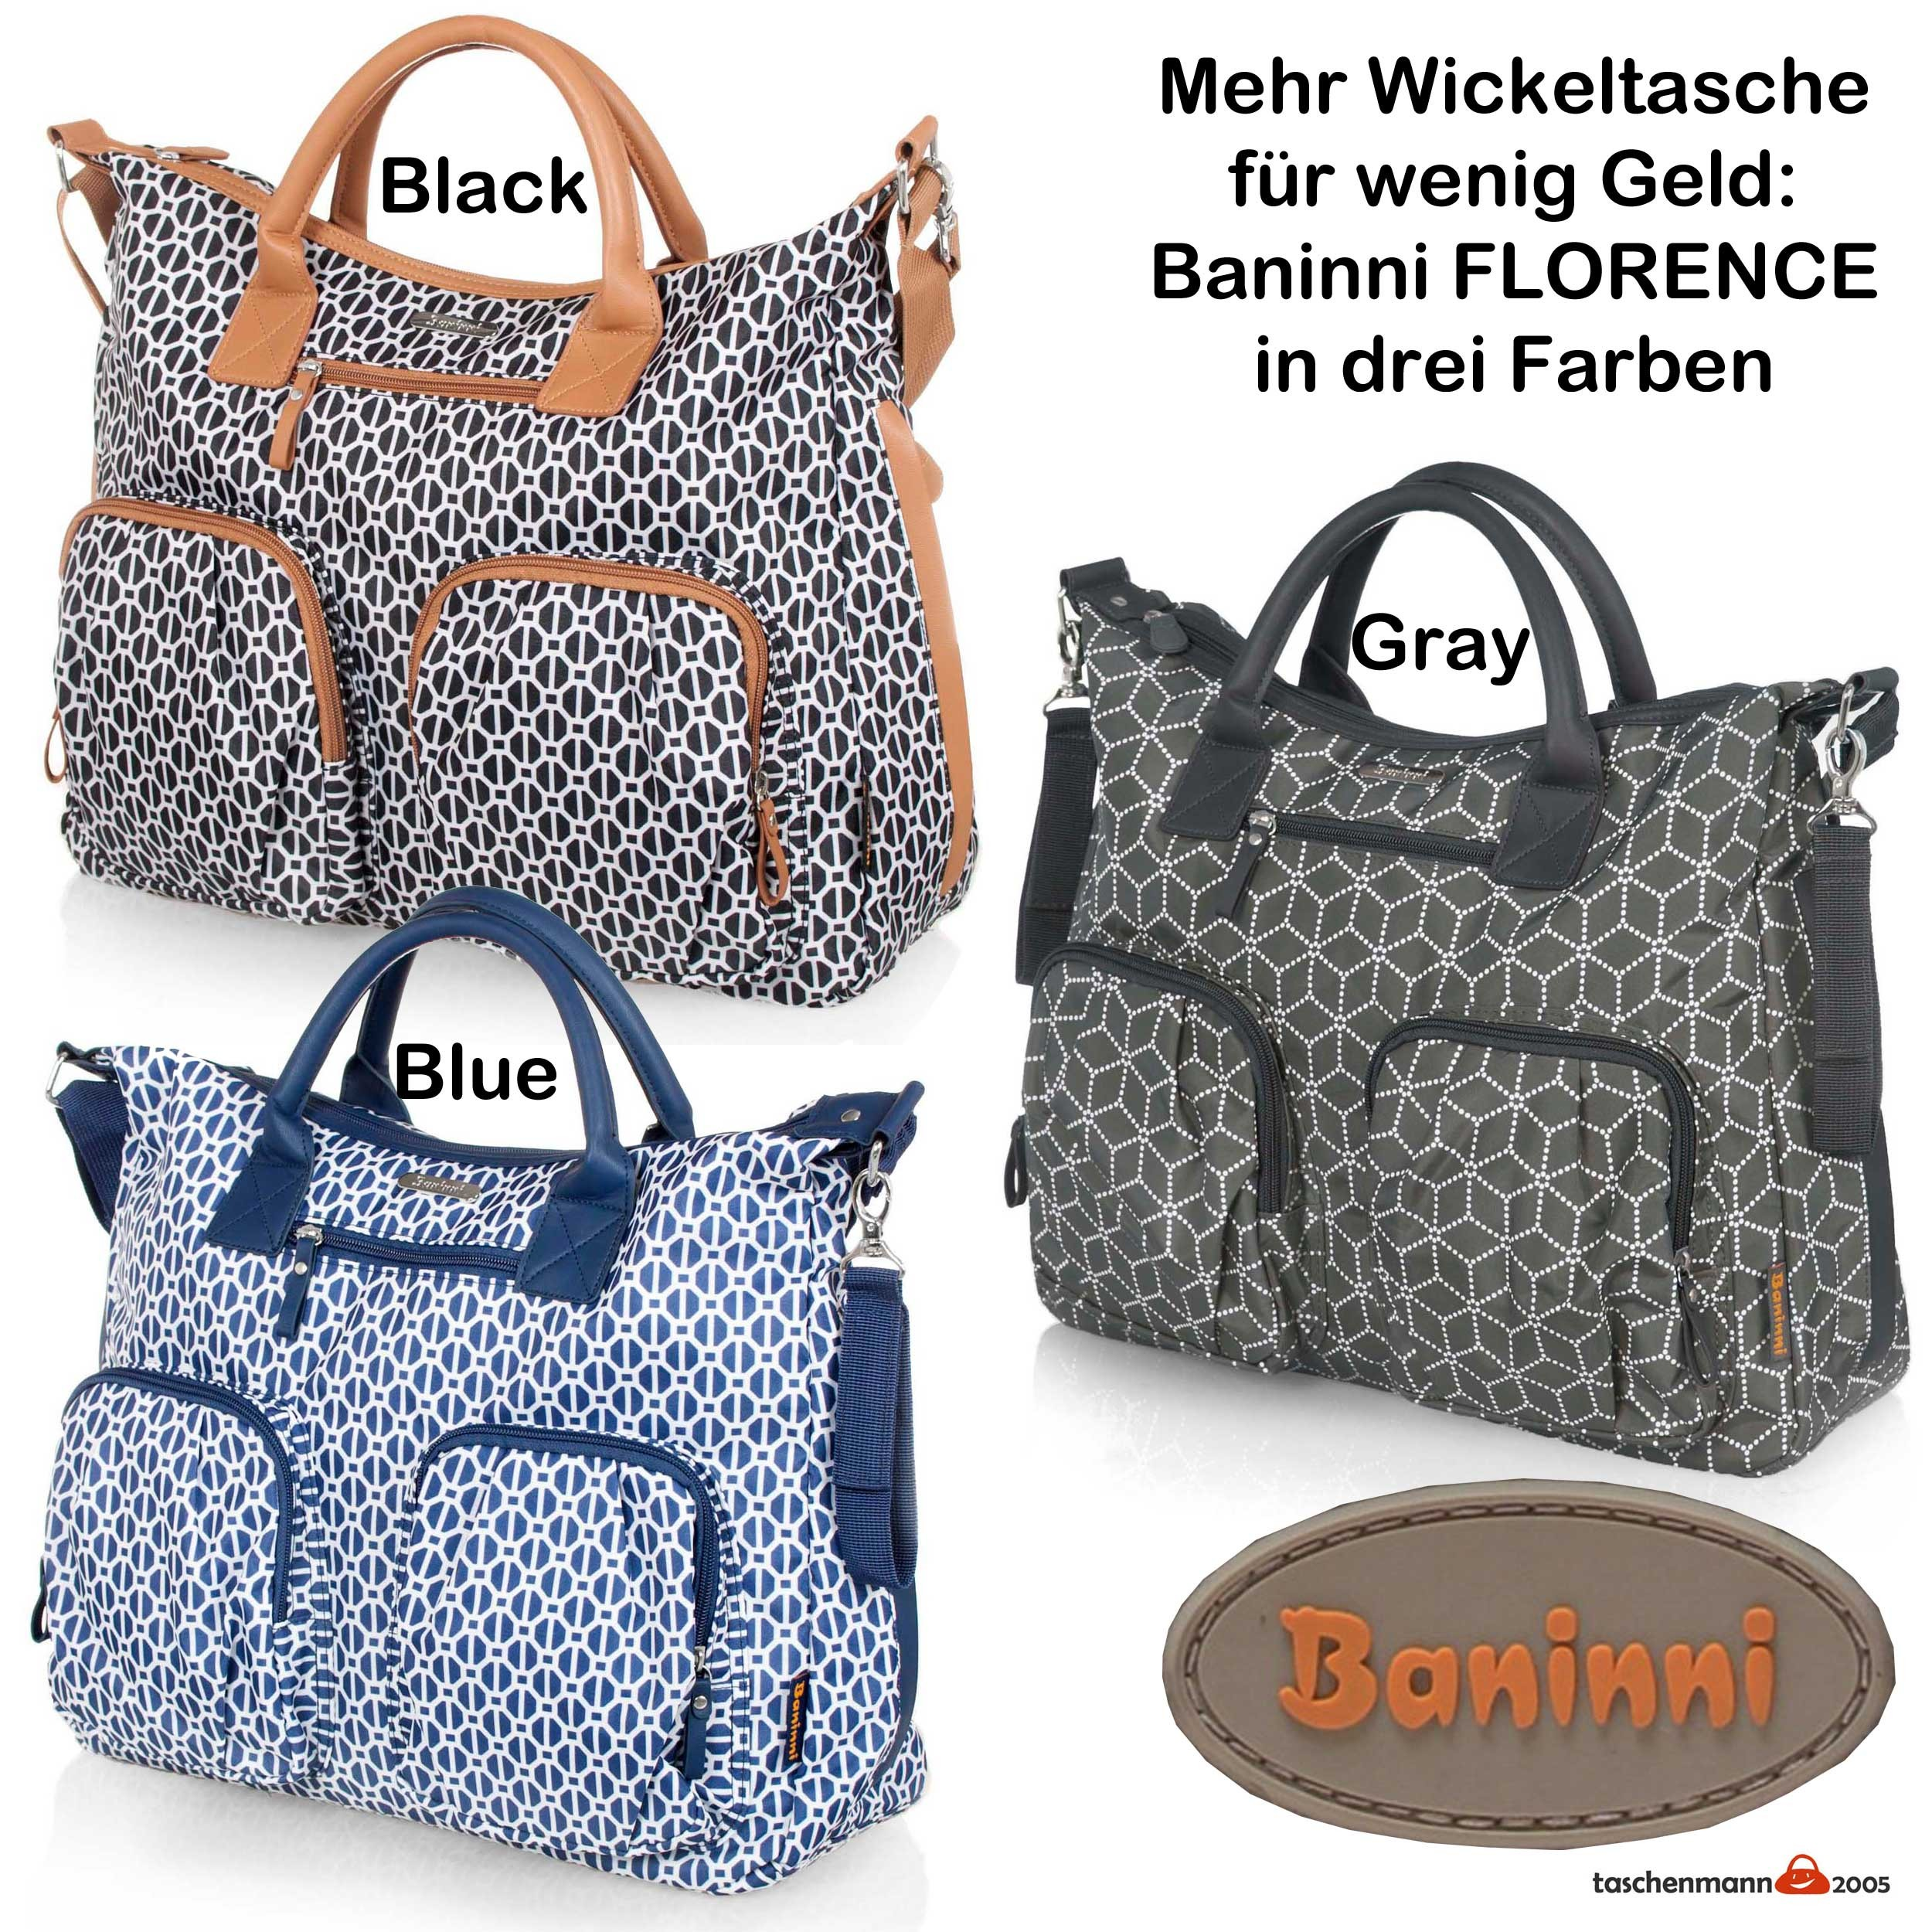 wickeltasche baninni florence in drei farben wickeltaschen baninni. Black Bedroom Furniture Sets. Home Design Ideas